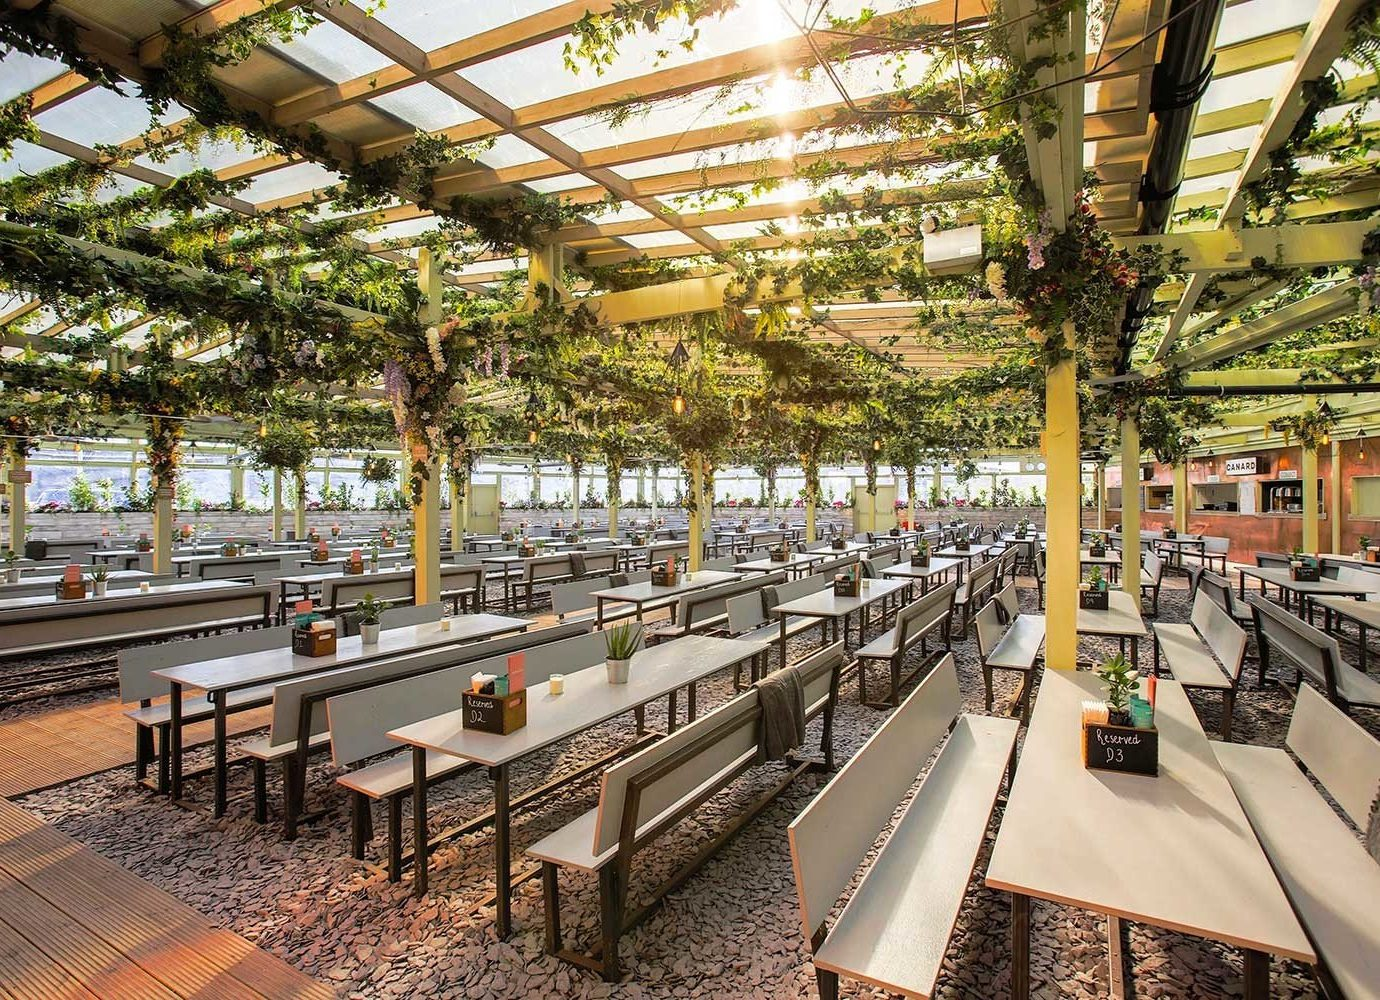 tree plant Pergola on the roof social hangout people summer